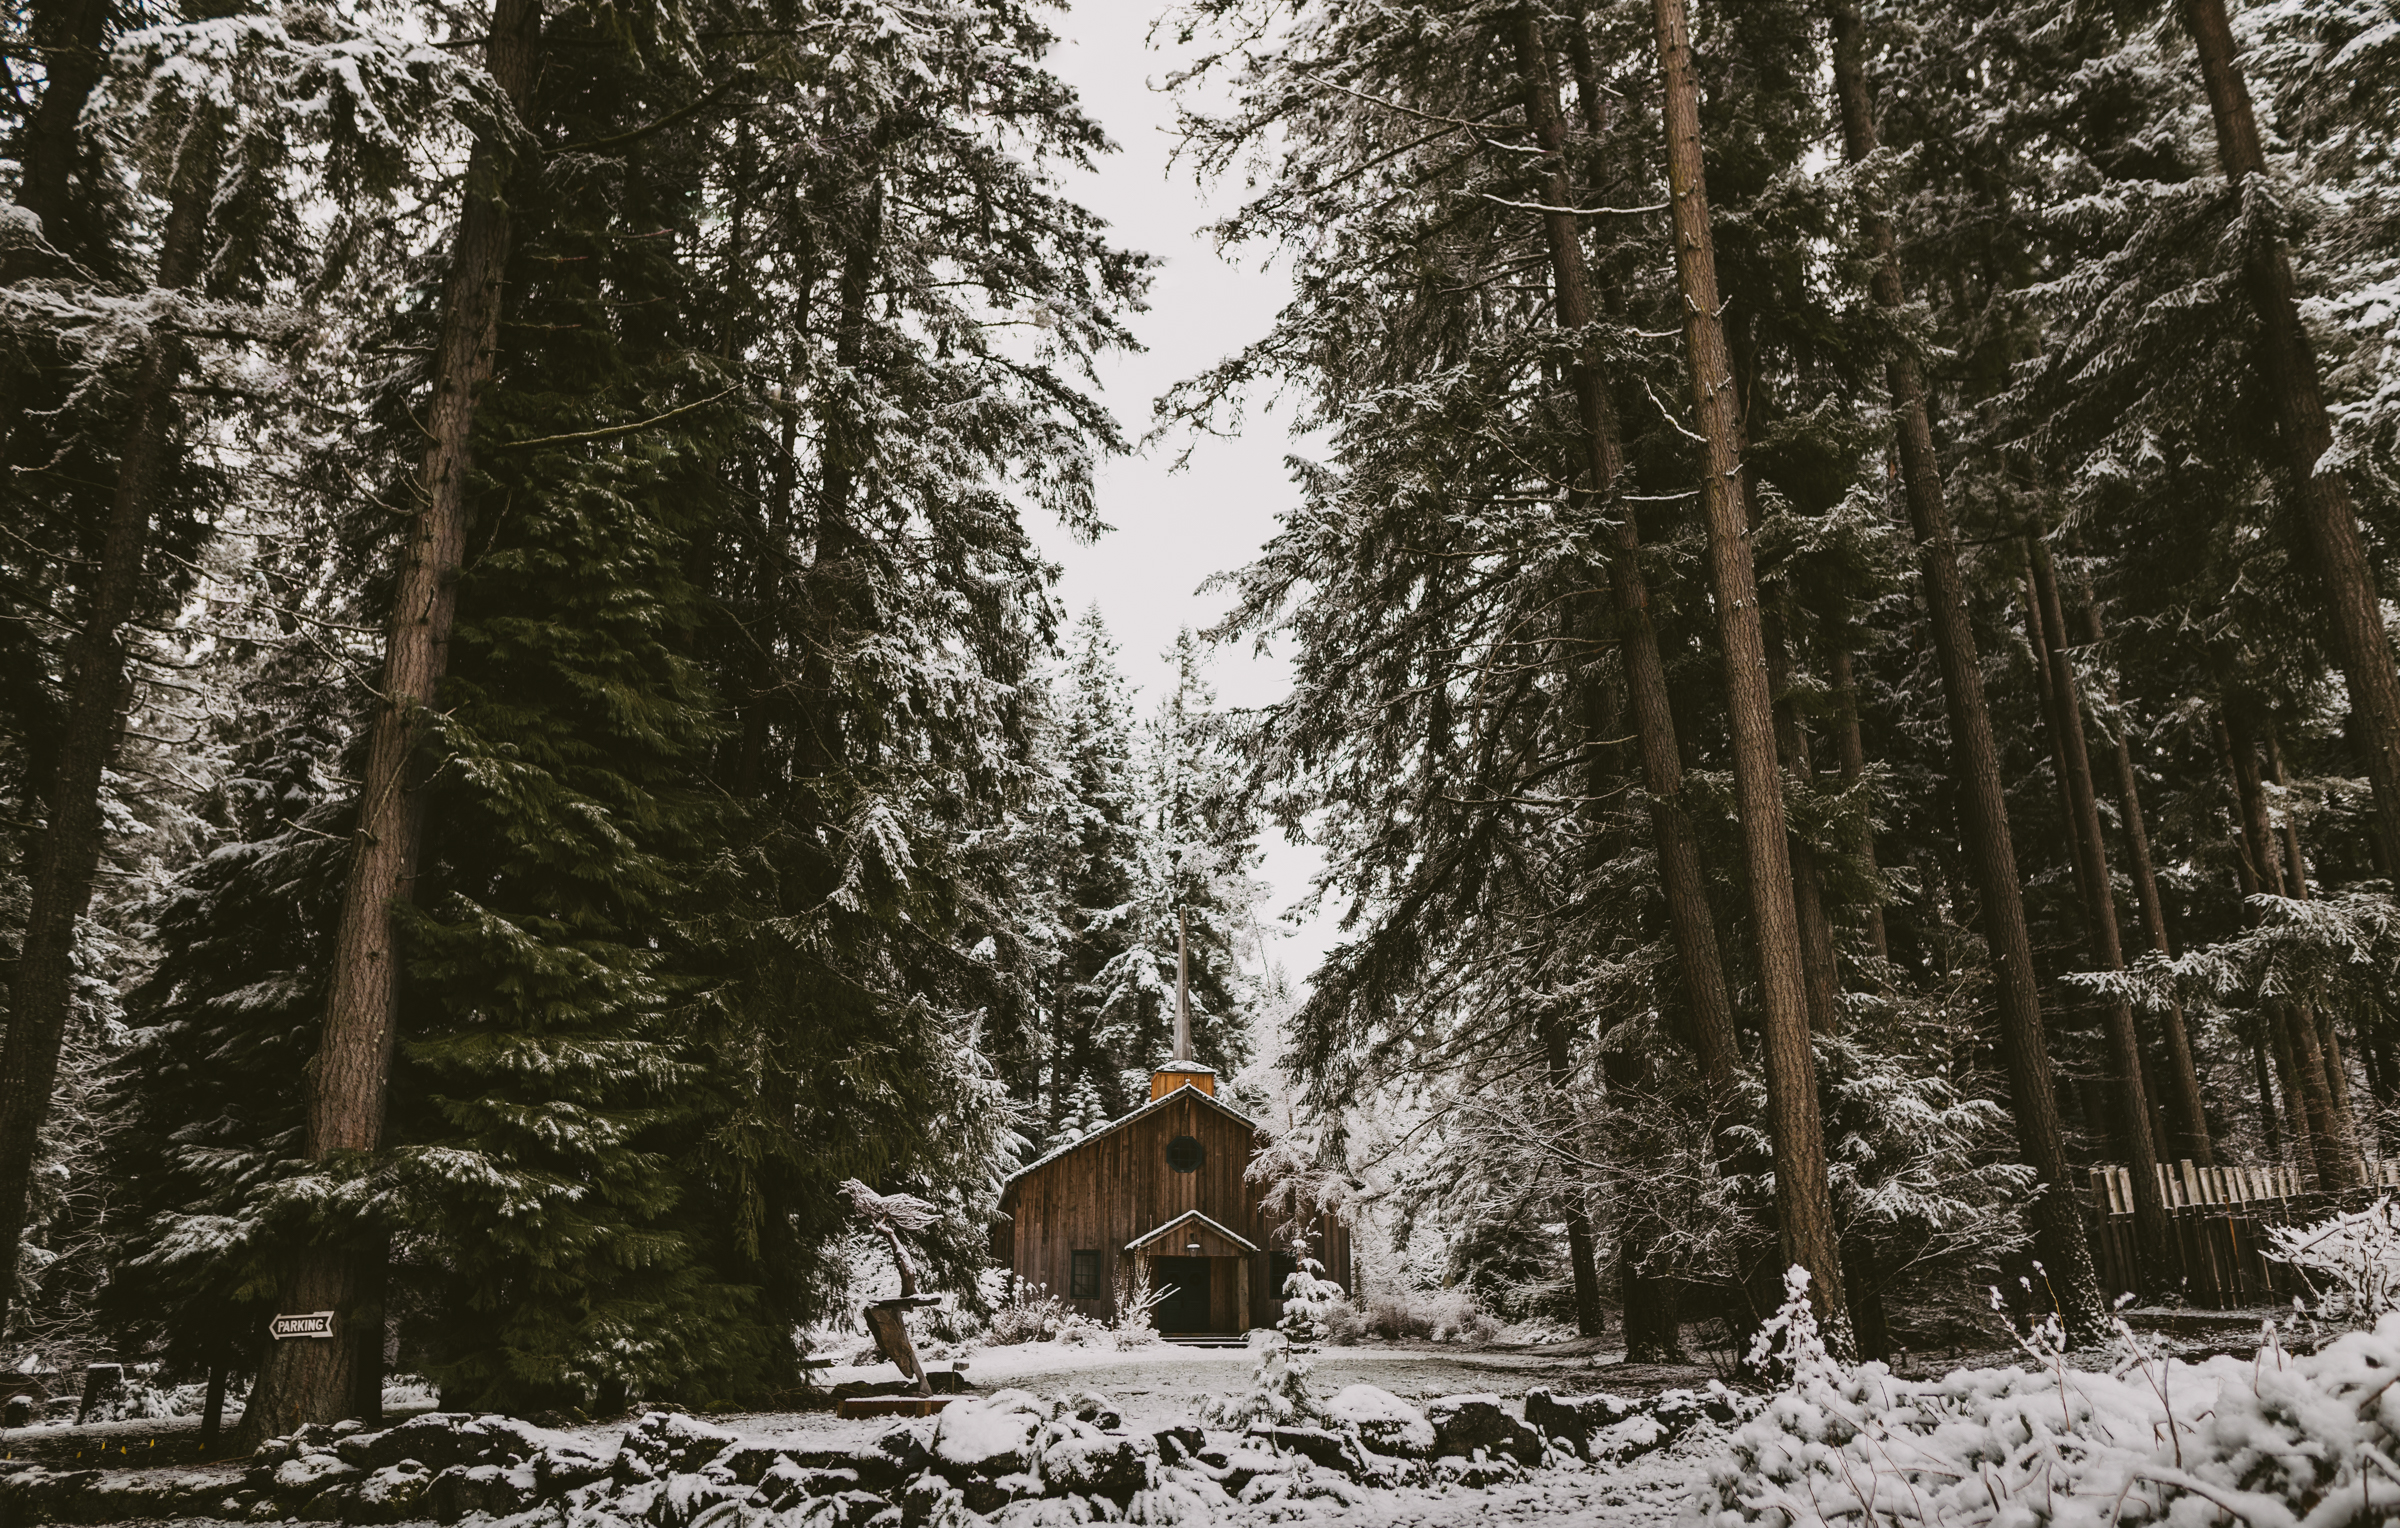 © Isaiah + Taylor Photography - Portland, Oregon Winter Forest Cabin Engagement-2.jpg